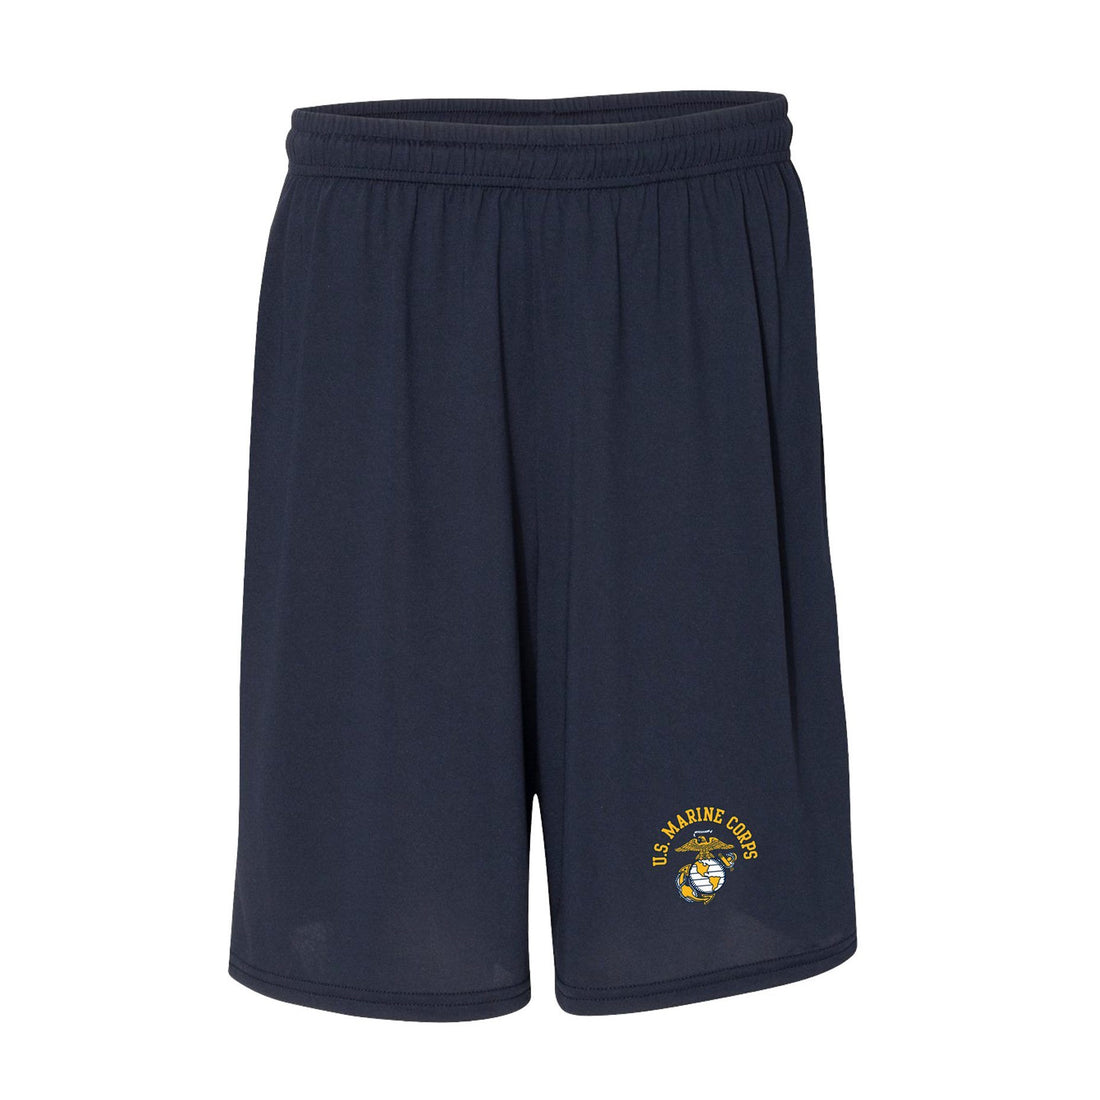 COMBAT CHARGED DRI-FIT PERFORMANCE POLY US EGA SHORT